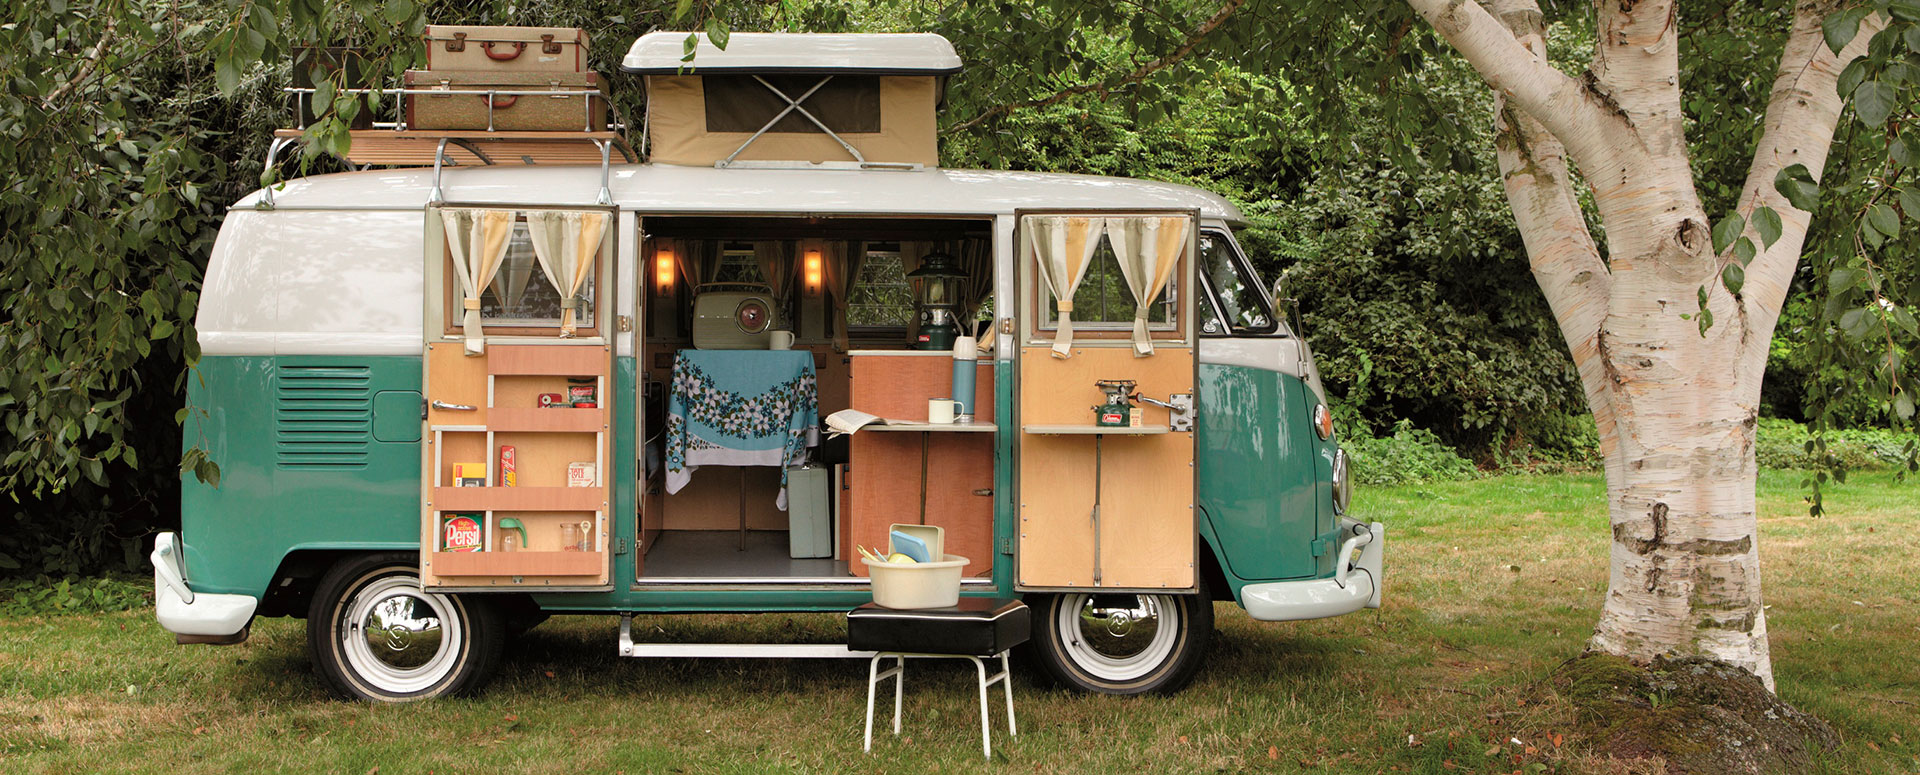 Furgonetas Campers M 225 S Fiables Canalcar